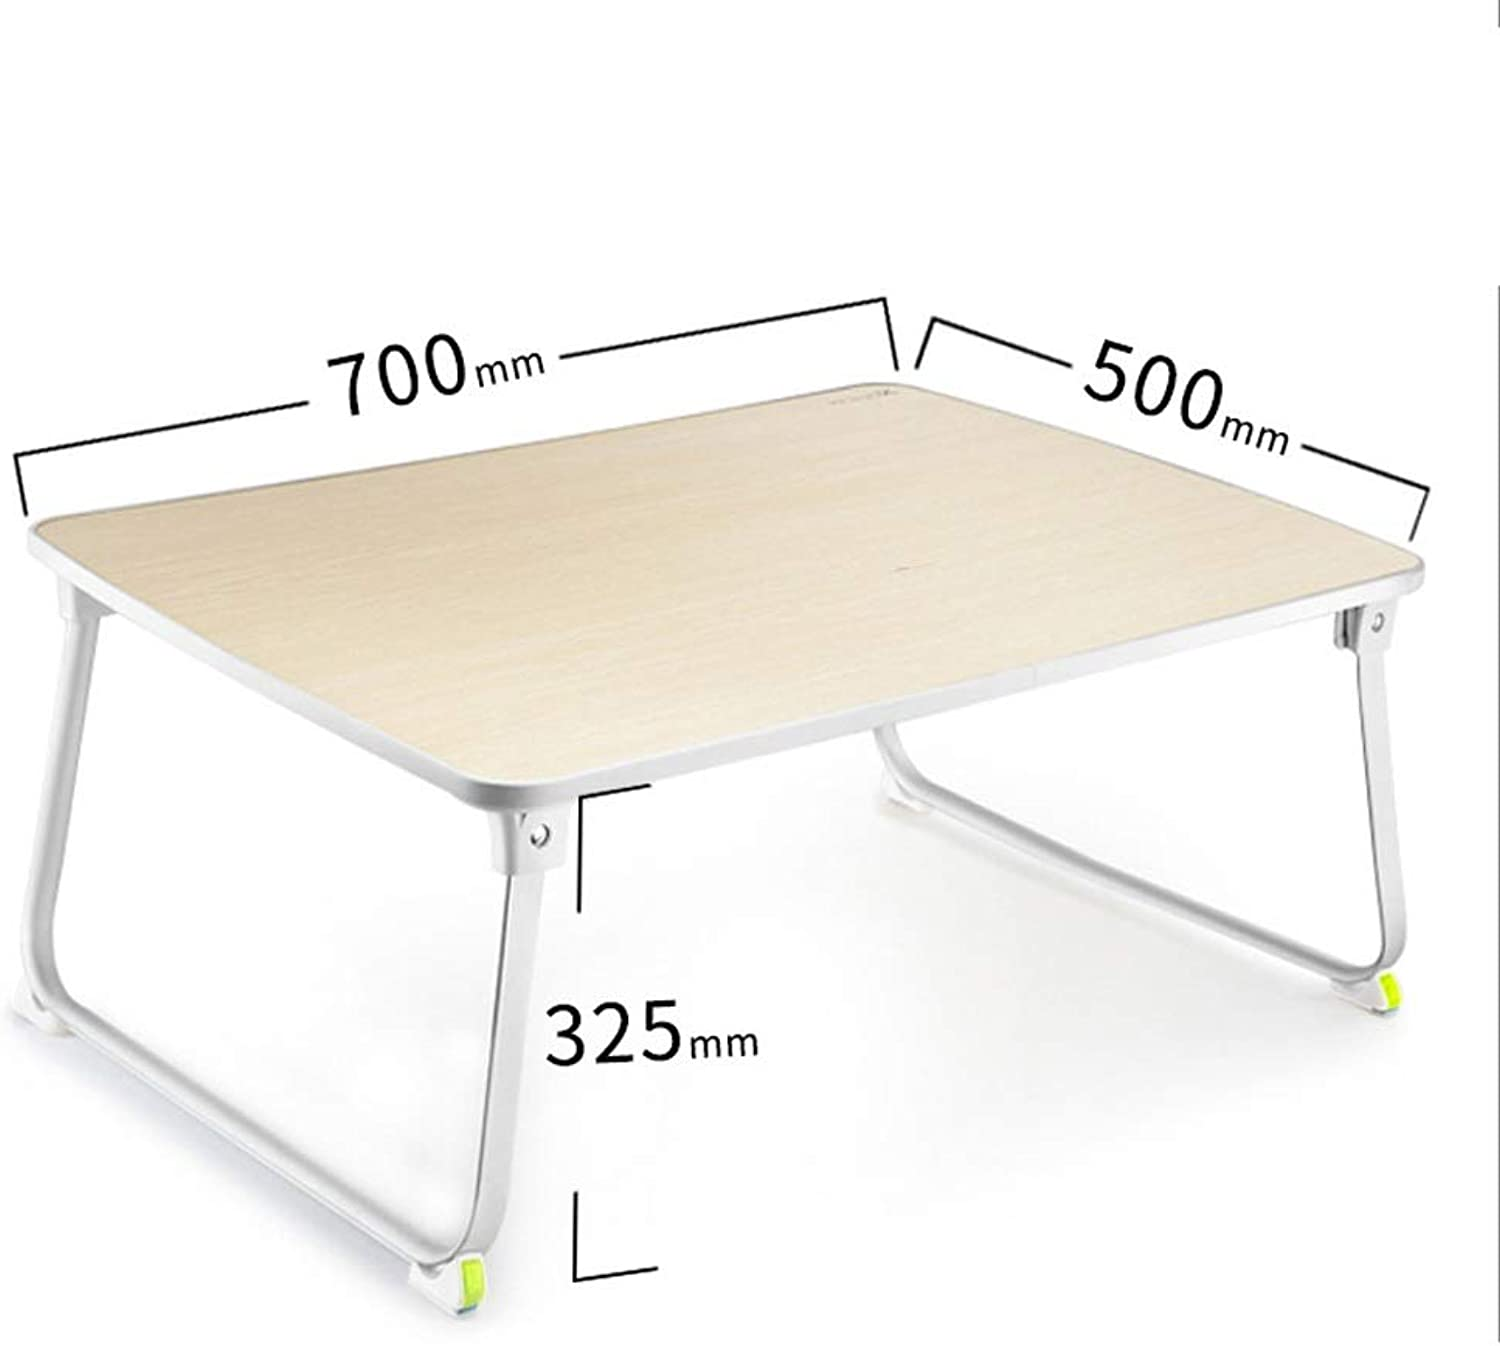 Laptop Table Aluminum Brackets Folding Bed Small Desks Student Dormitory Study Desks Multifunctional Sofas, Beds, Terraces, Balconies, Gardens are Available (color   Natural)